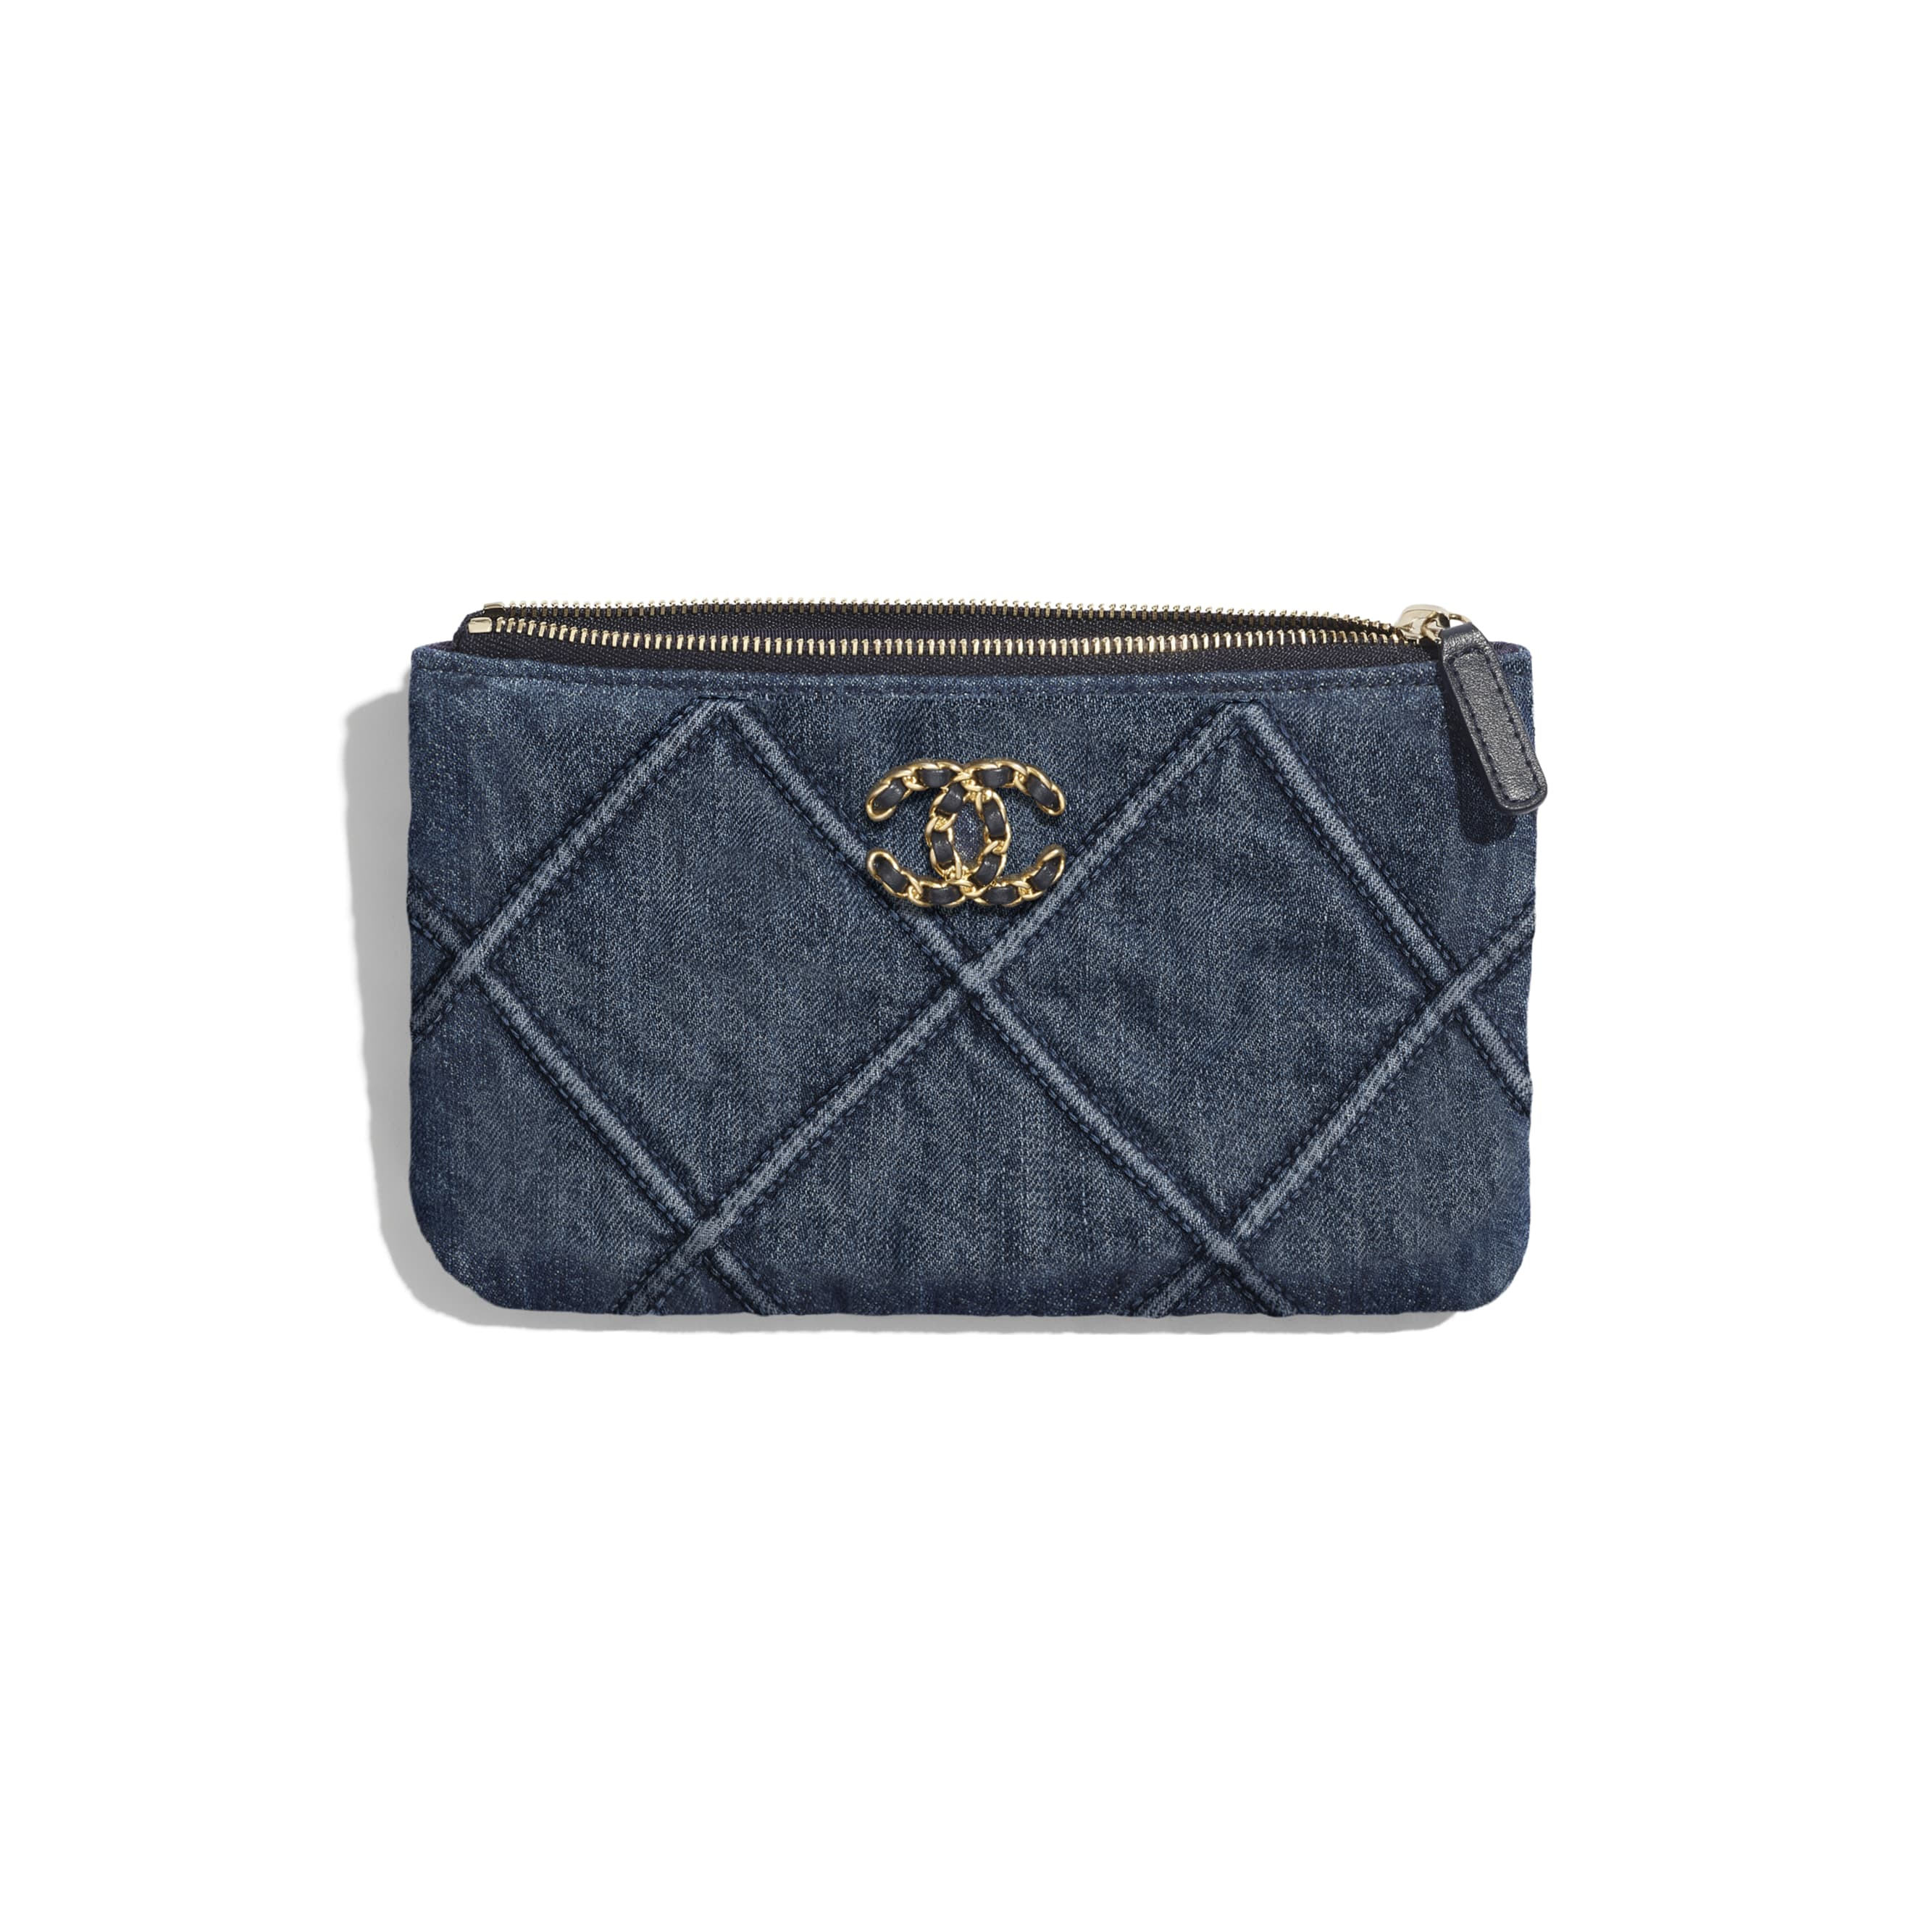 CHANEL 19 Small Pouch - Blue - Denim, Gold-Tone, Silver-Tone & Ruthenium-Finish Metal - CHANEL - Other view - see standard sized version